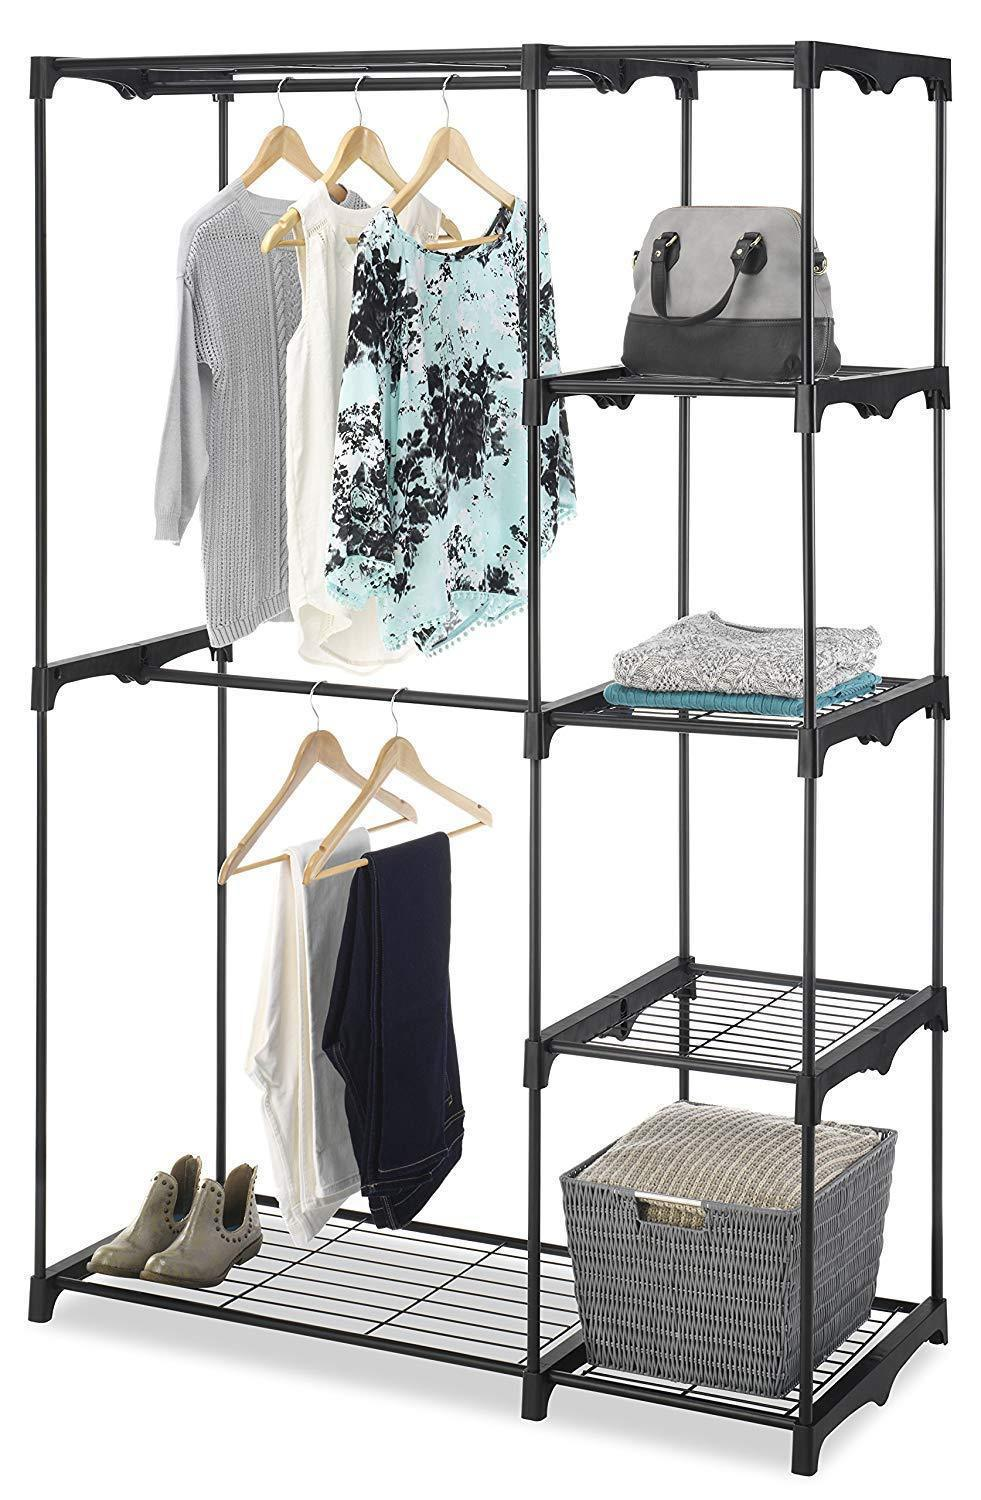 Shop whitmor freestanding portable closet organizer heavy duty black steel frame double rod wardrobe cloths storage with 5 shelves shoe rack for home or office size 45 1 4 x 19 1 4 x 68